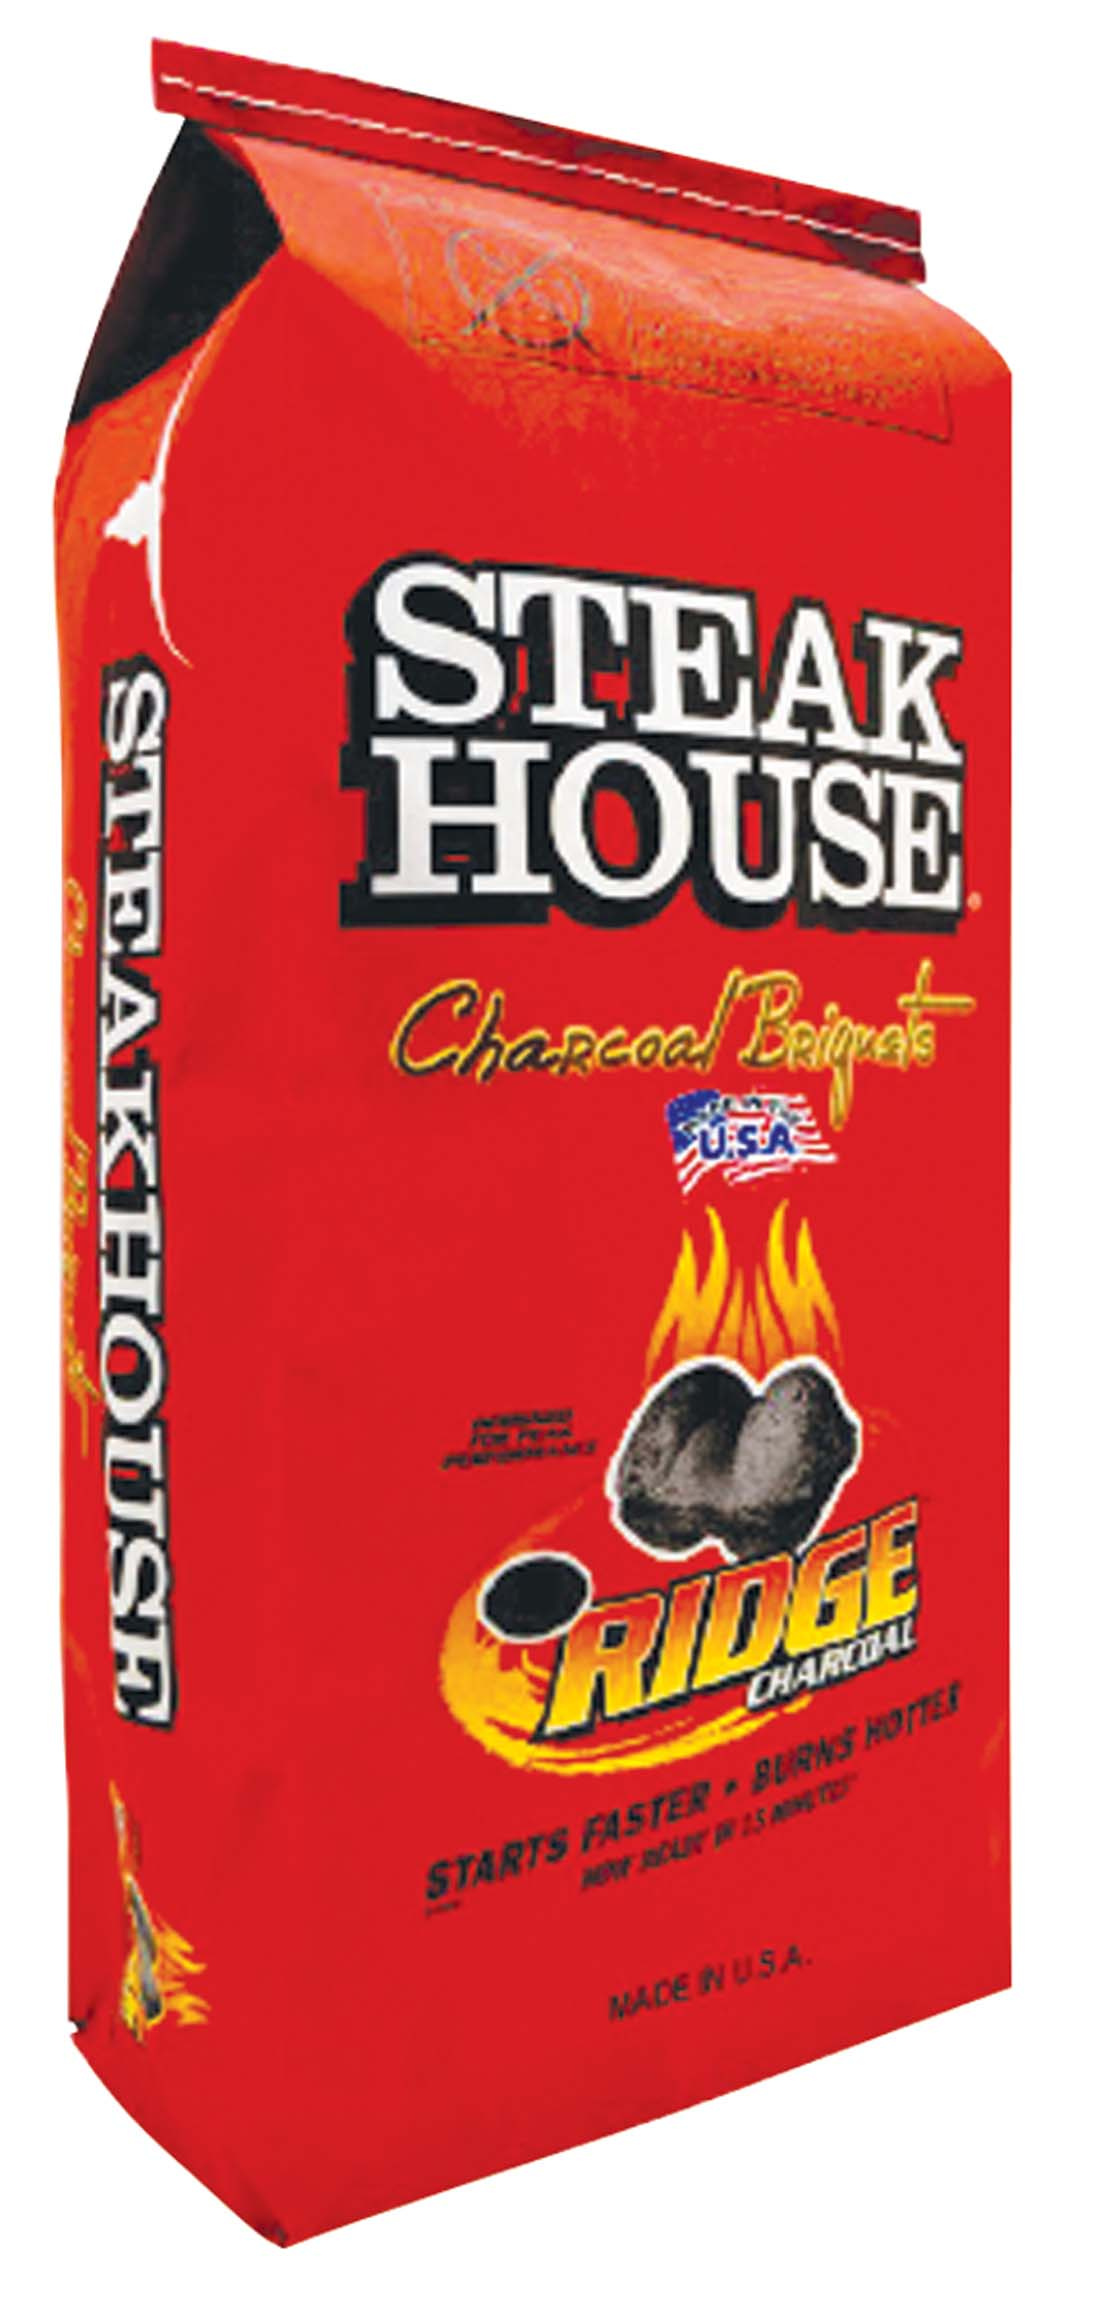 View STEAKHOUSE CHARCOAL BRIQUETS 16.6 LBS